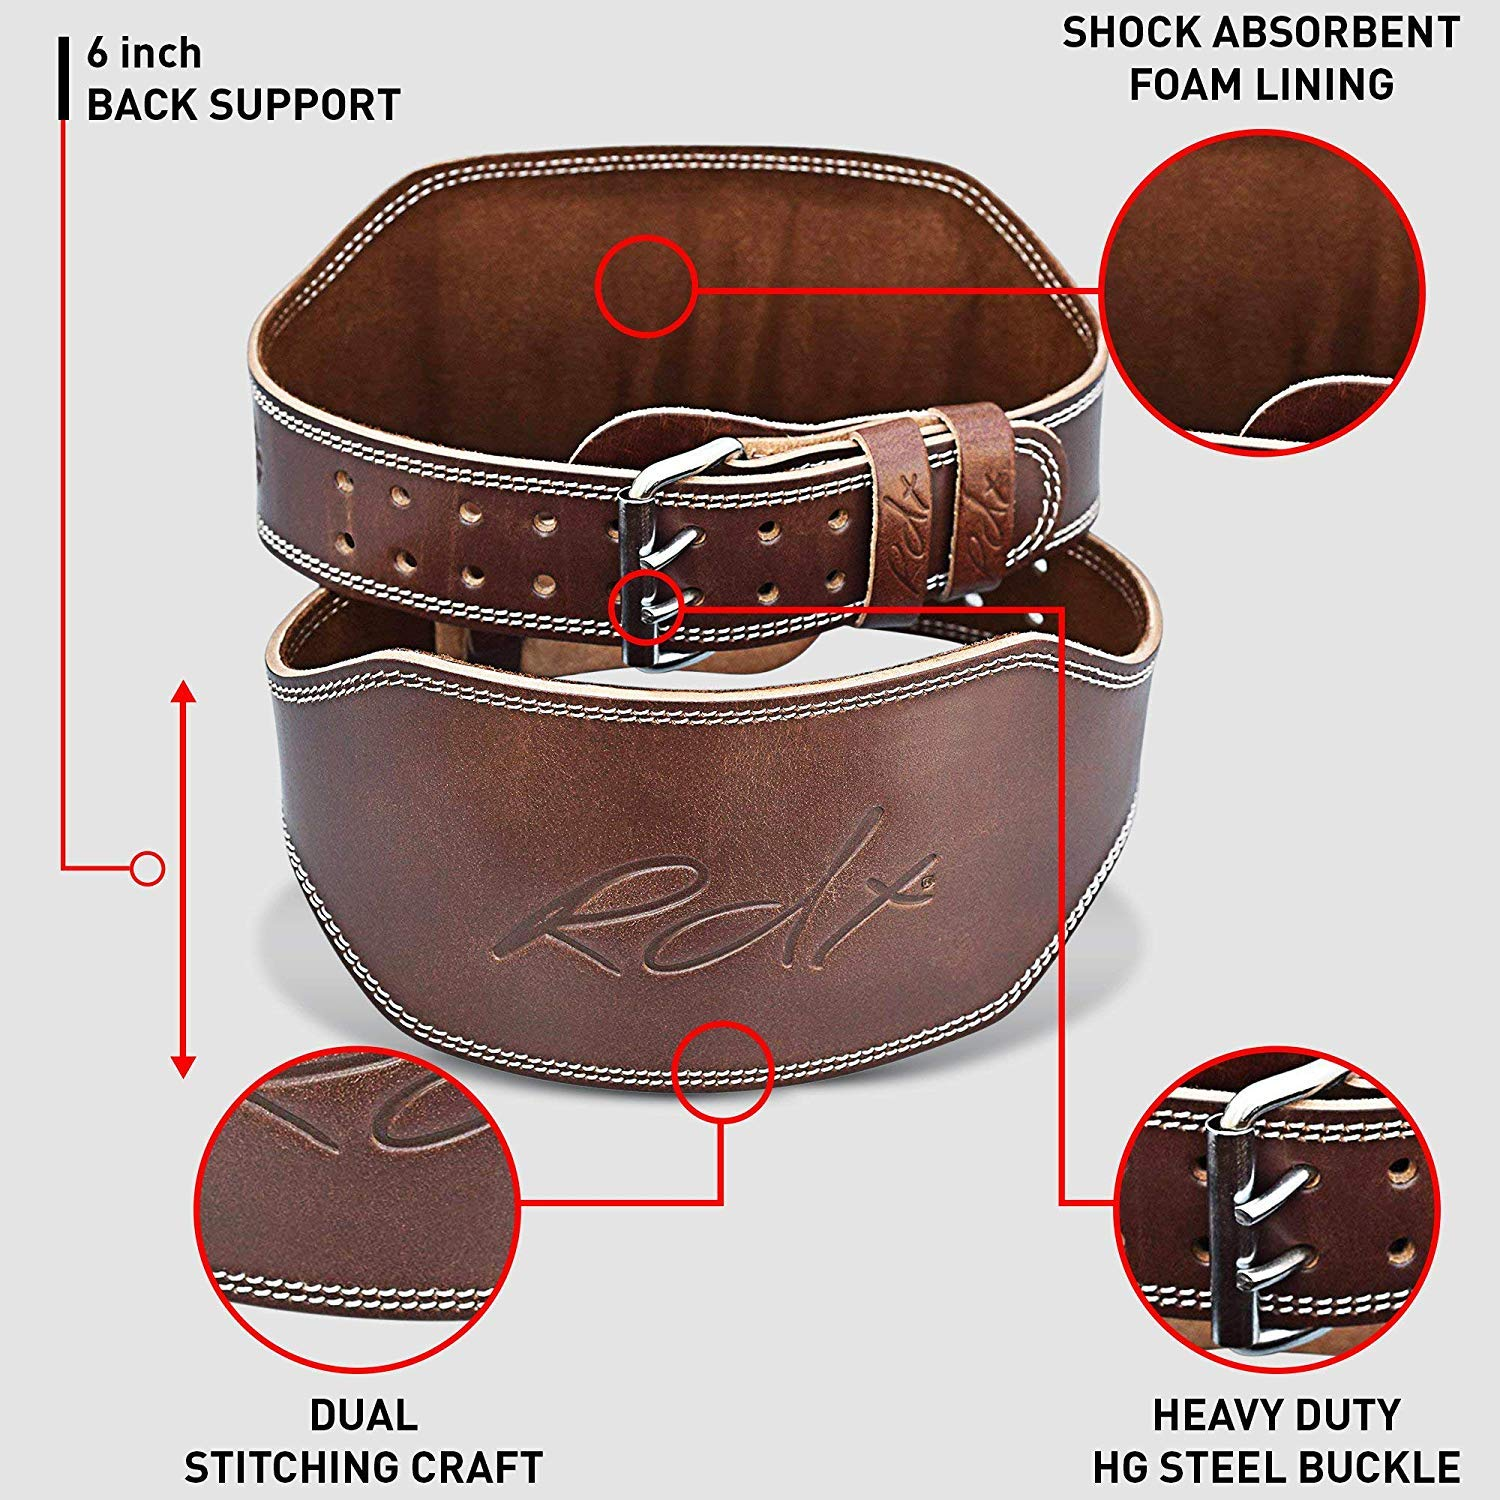 RDX Weight Lifting Belt 6'' Cow Hide Leather Double Prong Back Support Gym Exercise Bodybuilding Training Workout by RDX (Image #5)